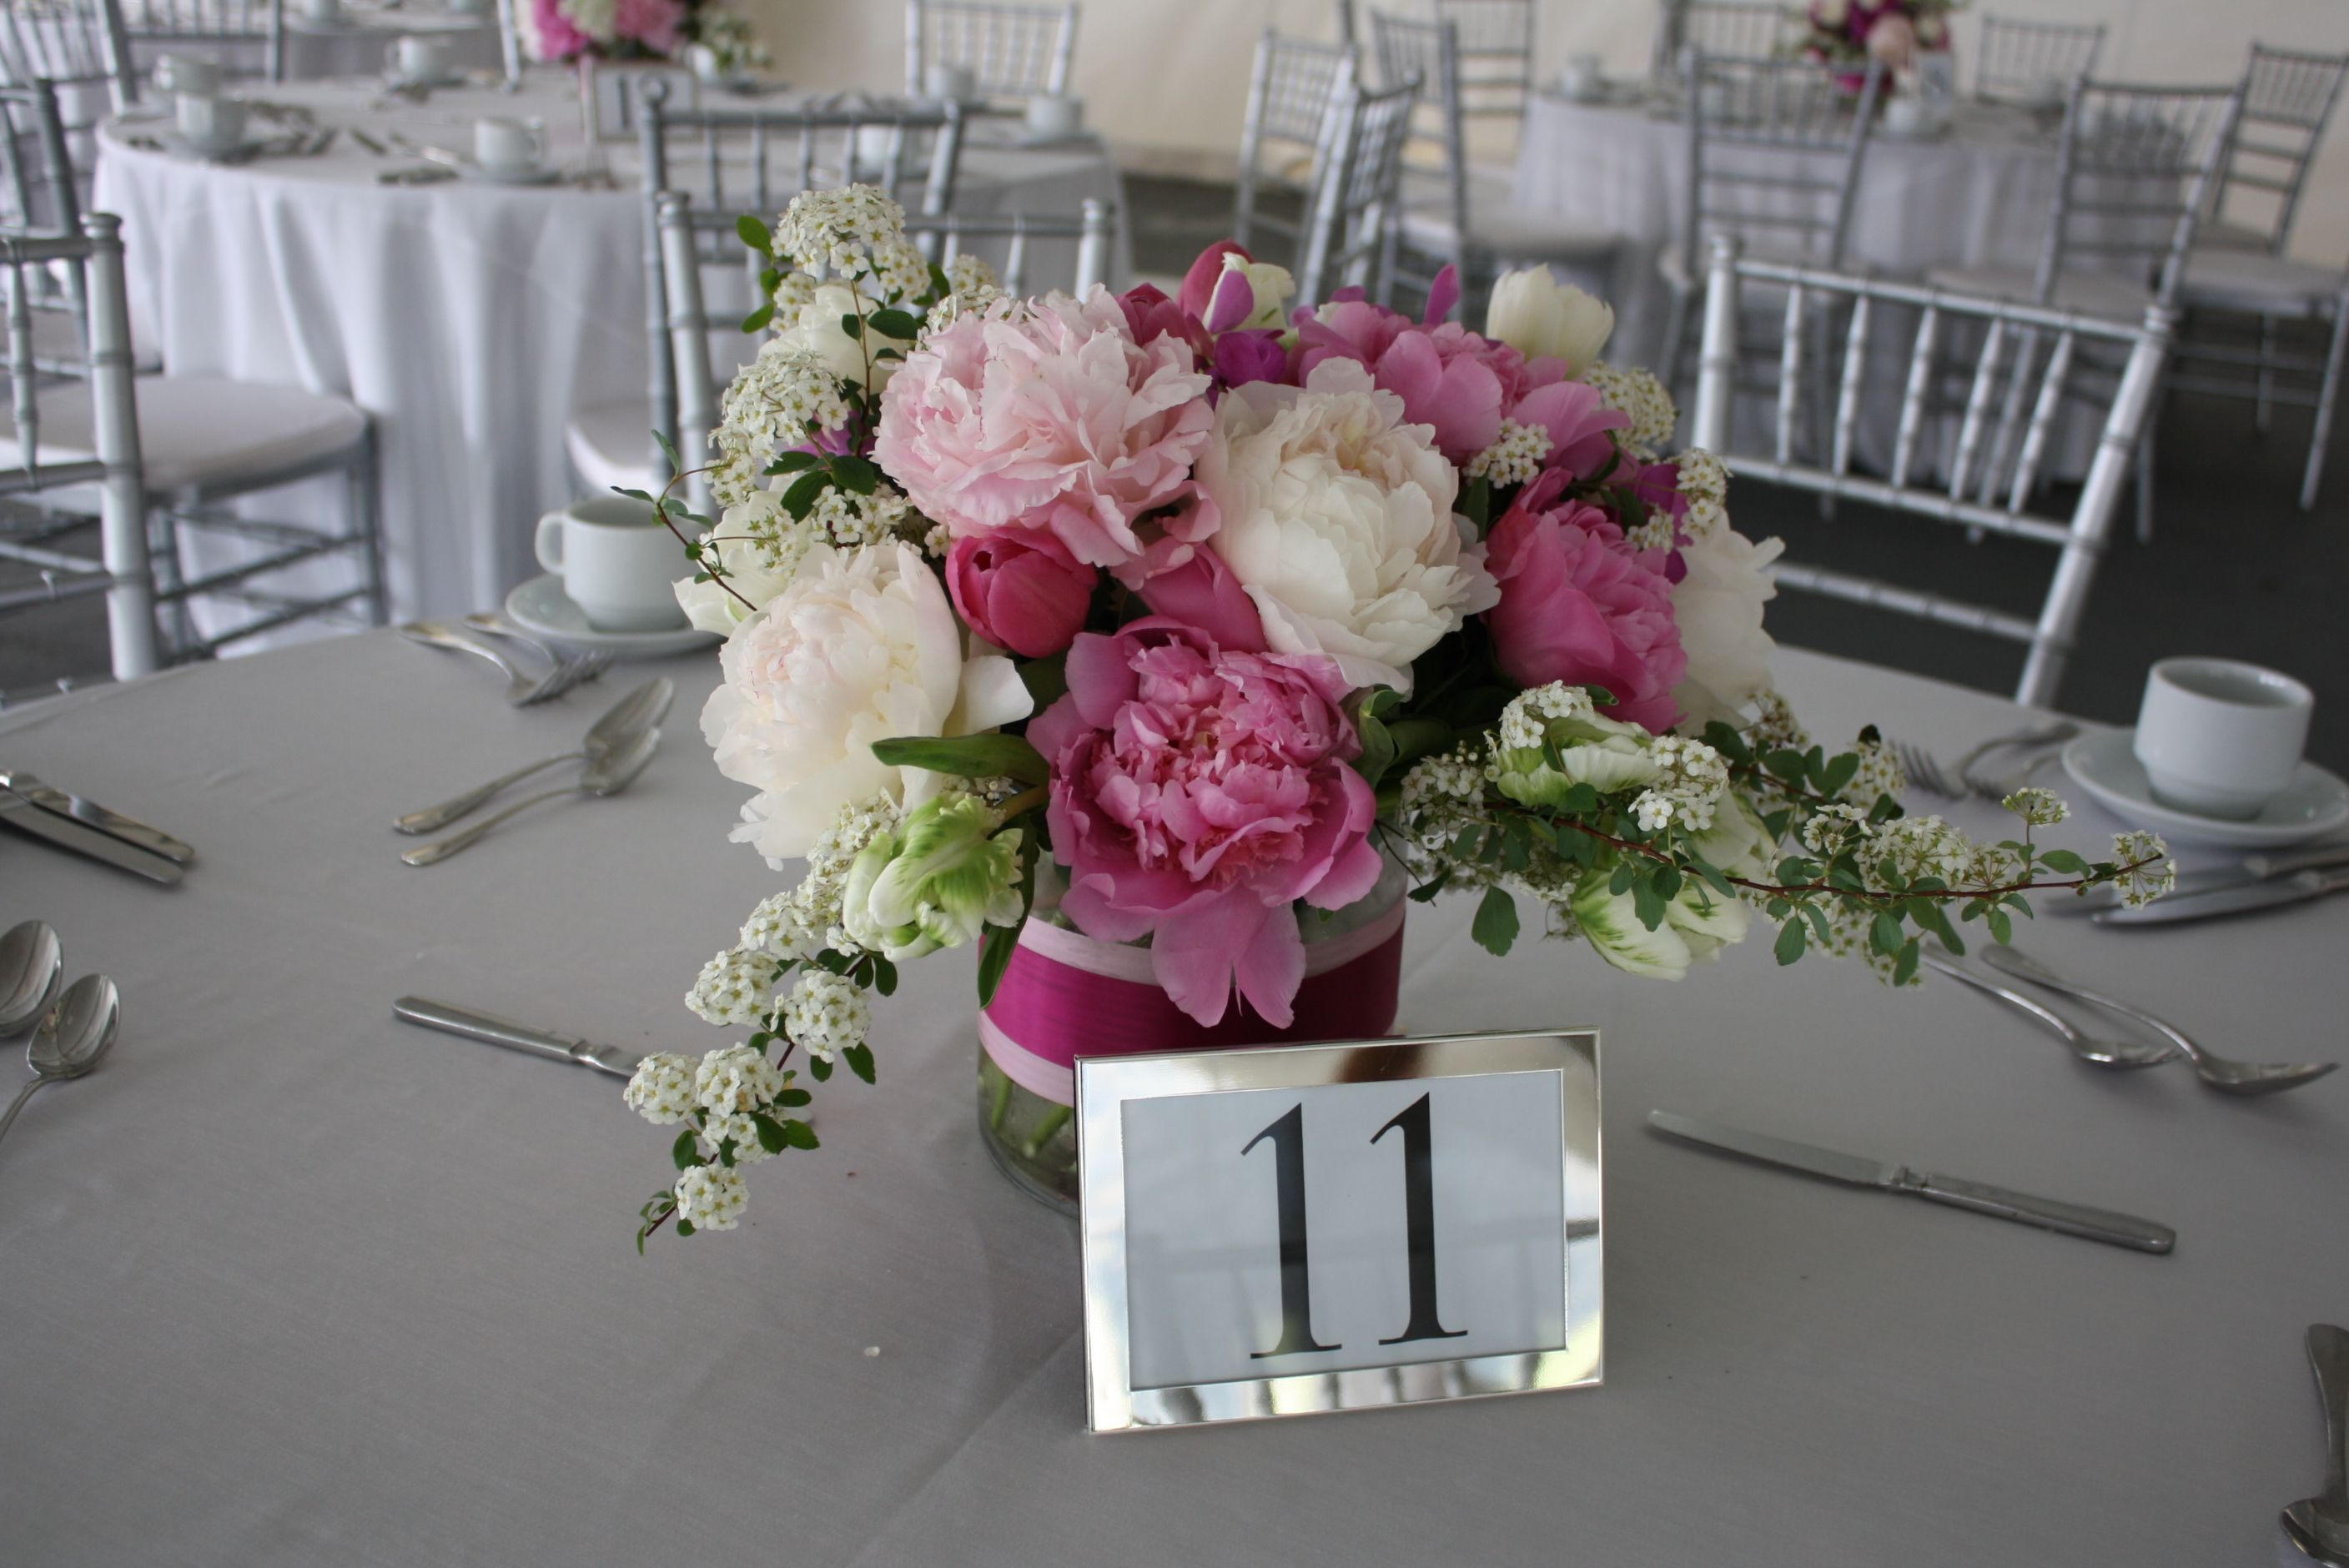 Wedding Centerpiece From Patalena